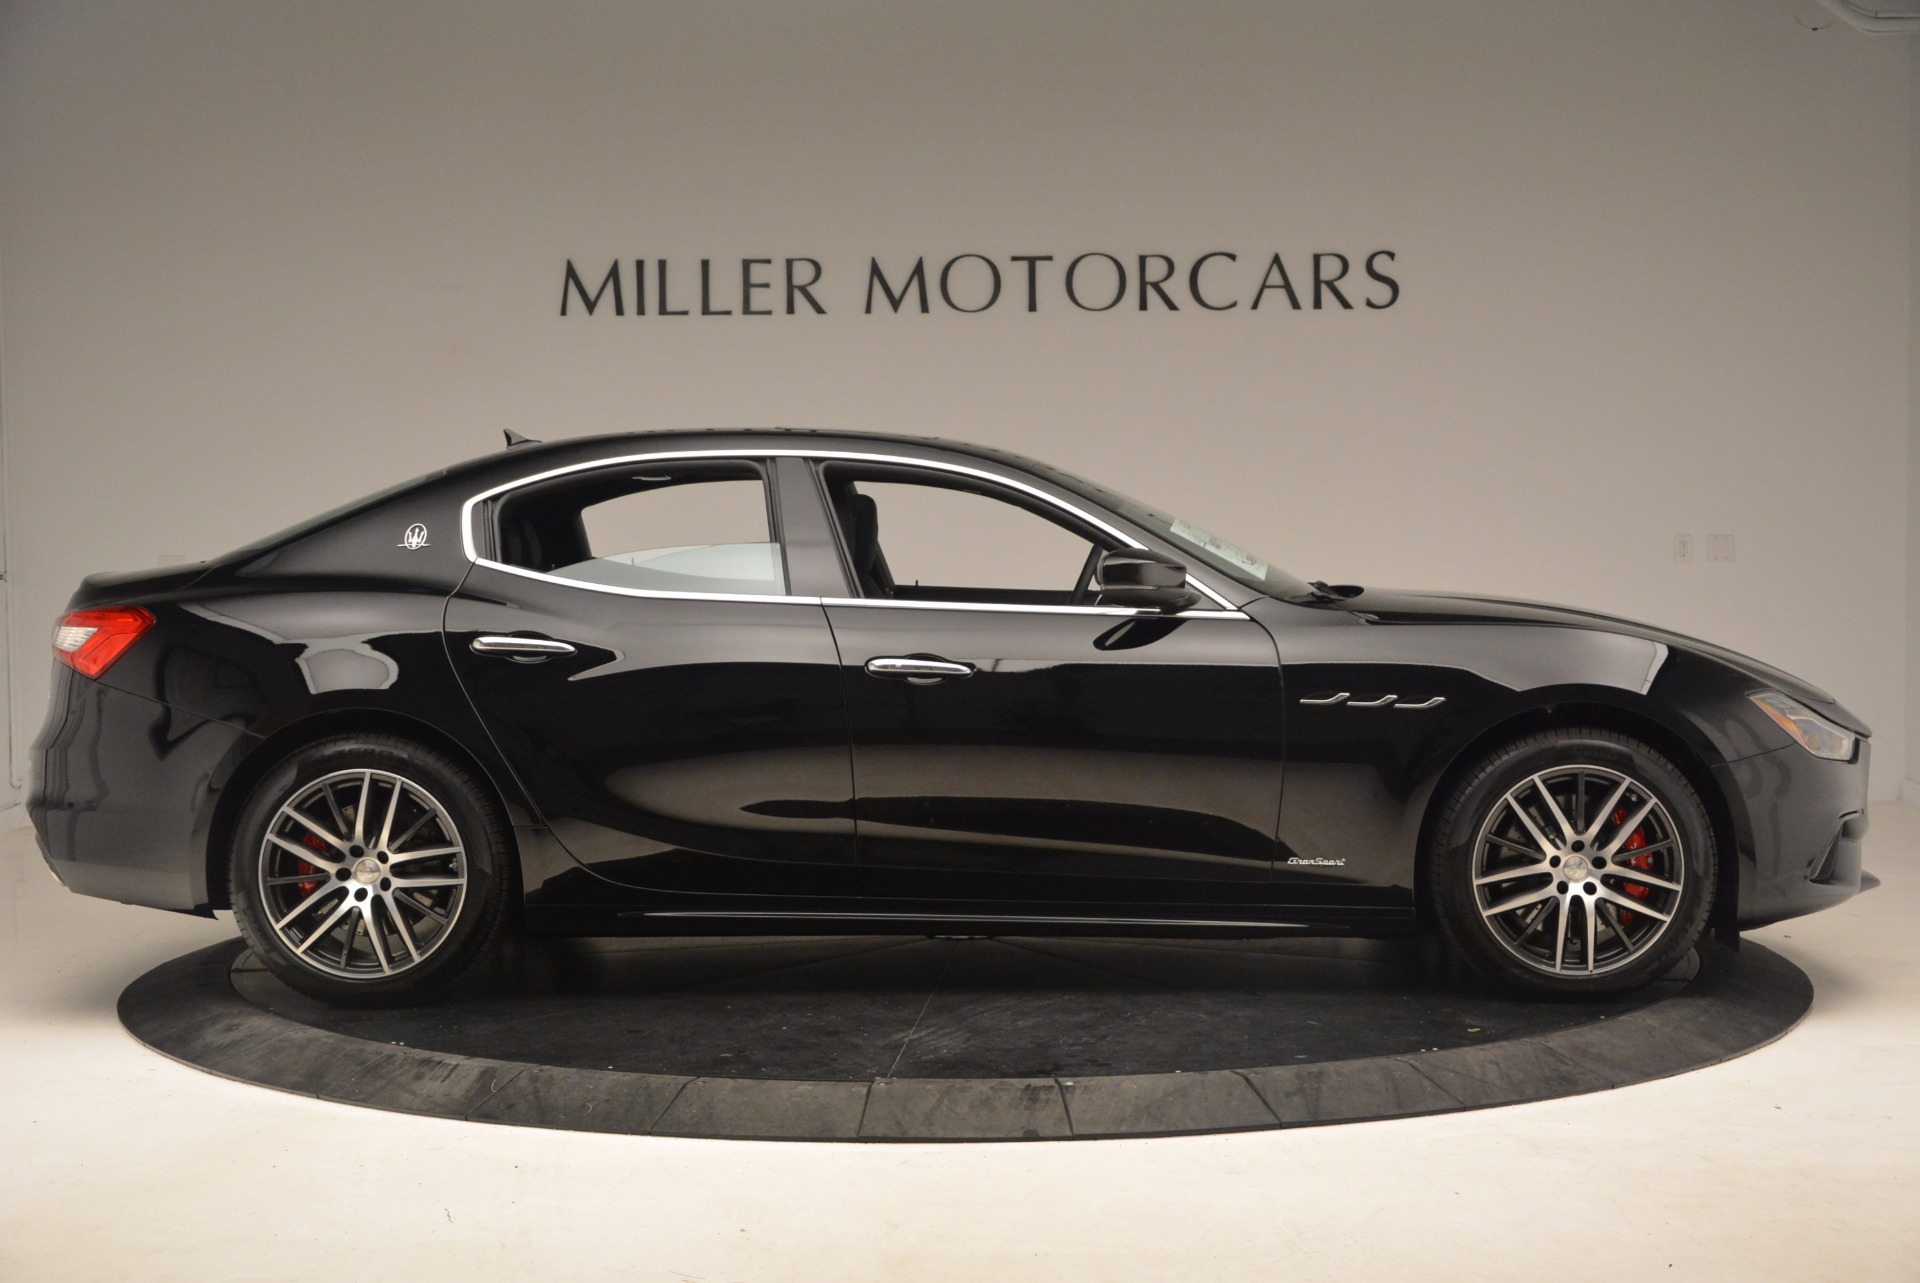 Used 2018 Maserati Ghibli S Q4 Gransport For Sale In Greenwich, CT 1568_p9